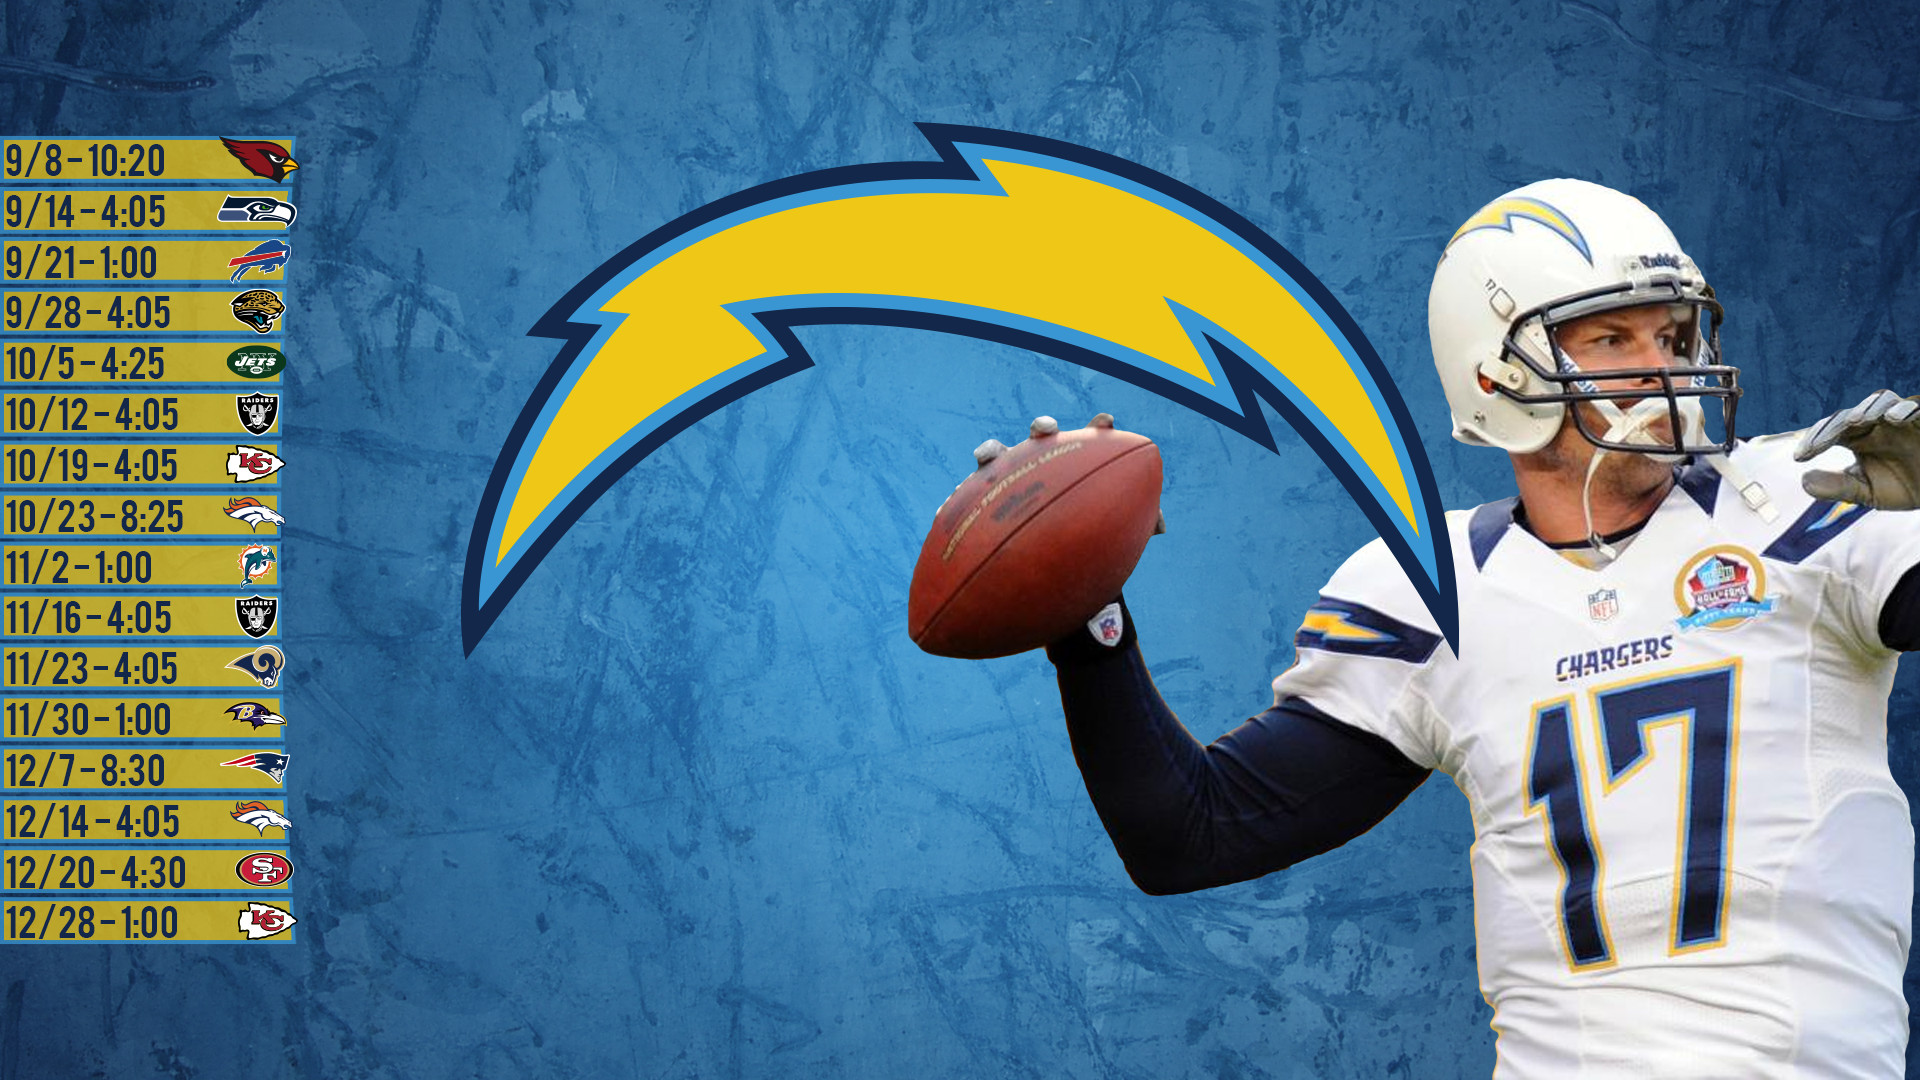 1920x1080 Just made a Chargers wallpaper with the 2014 scheduled on it. Let me know  if you like it.